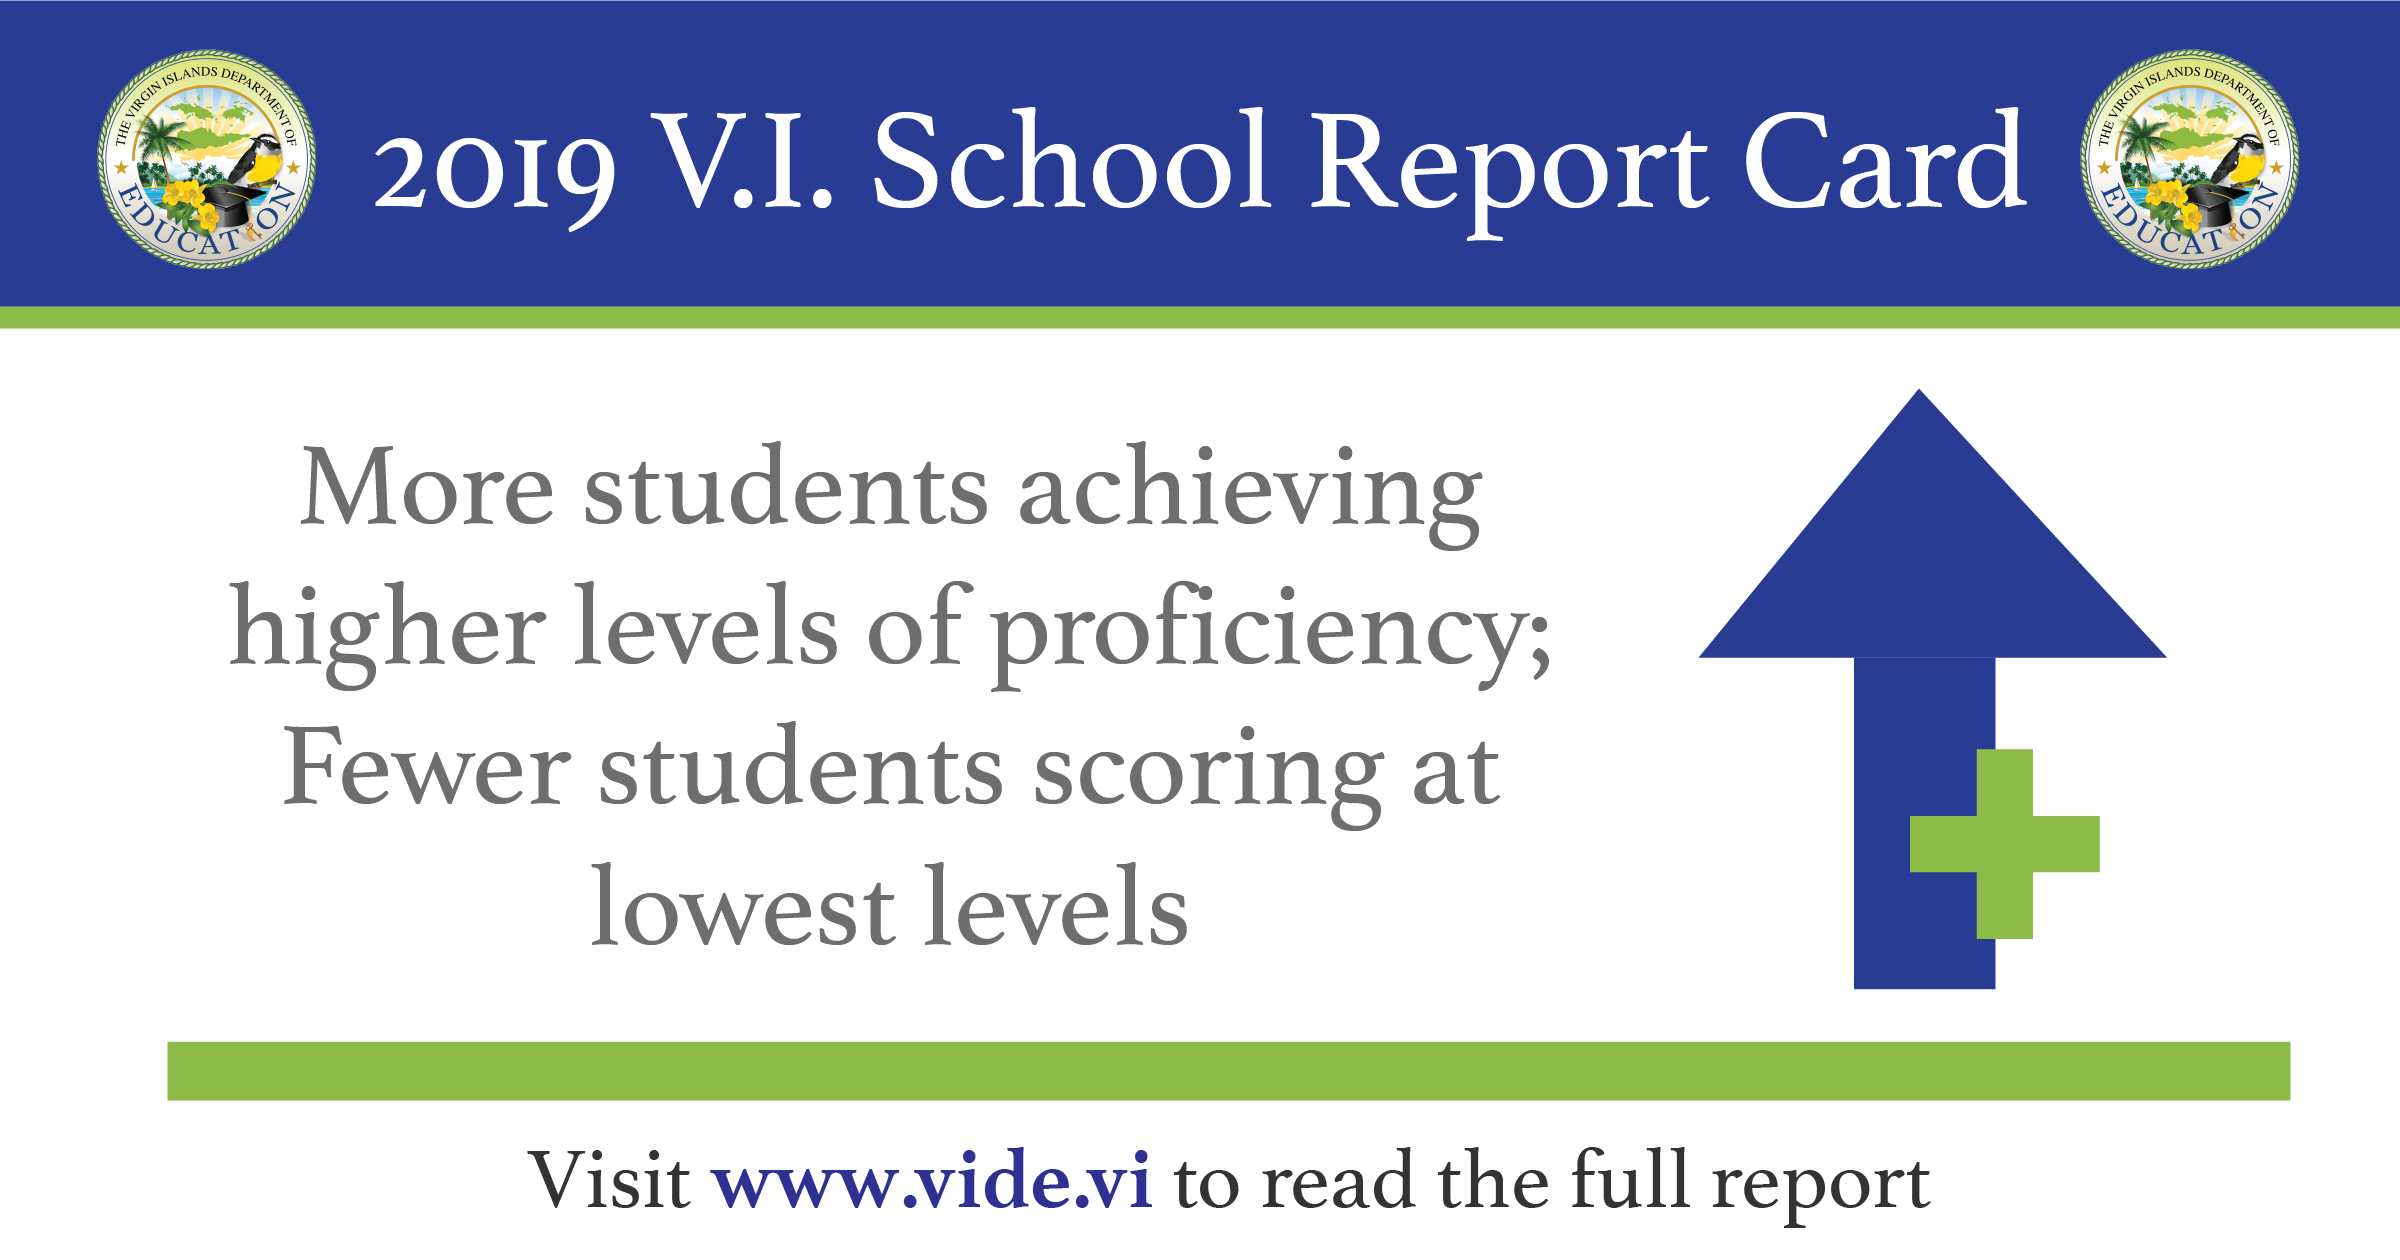 DOE VI REPORT CARD - More achievers of higher proficiency-01.png